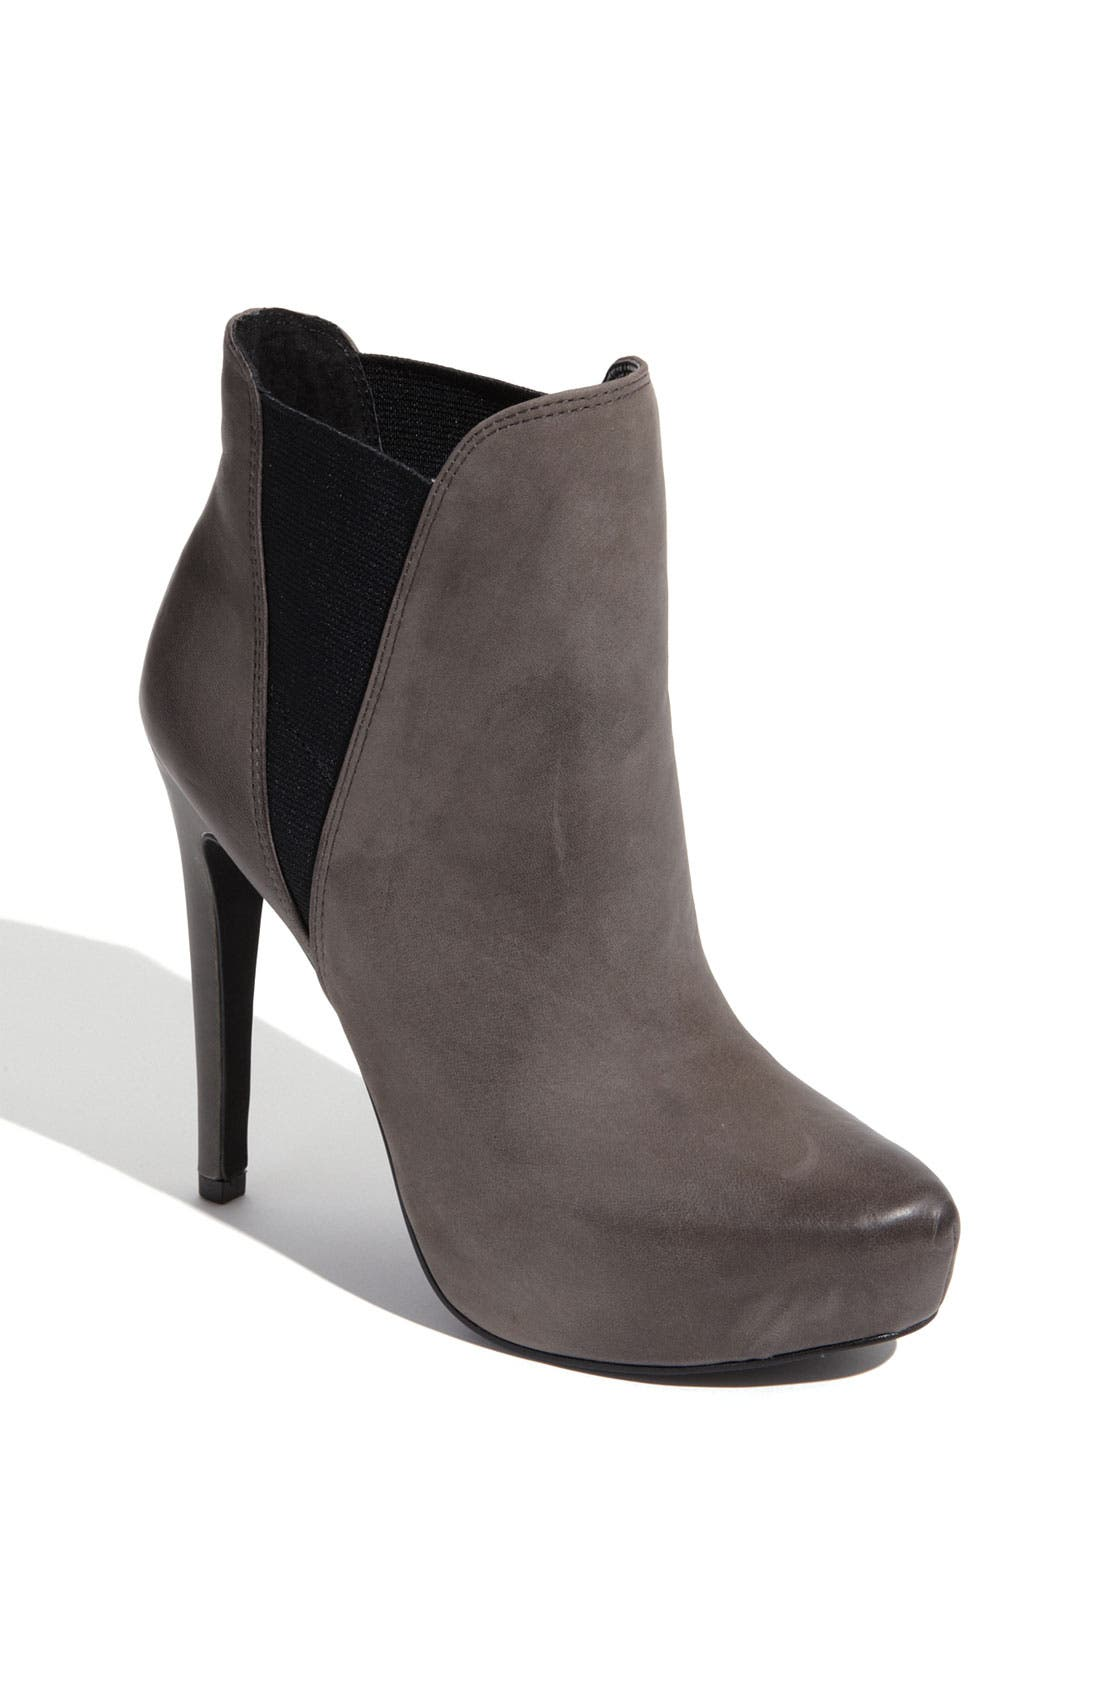 Alternate Image 1 Selected - Jessica Simpson 'Francis' Bootie